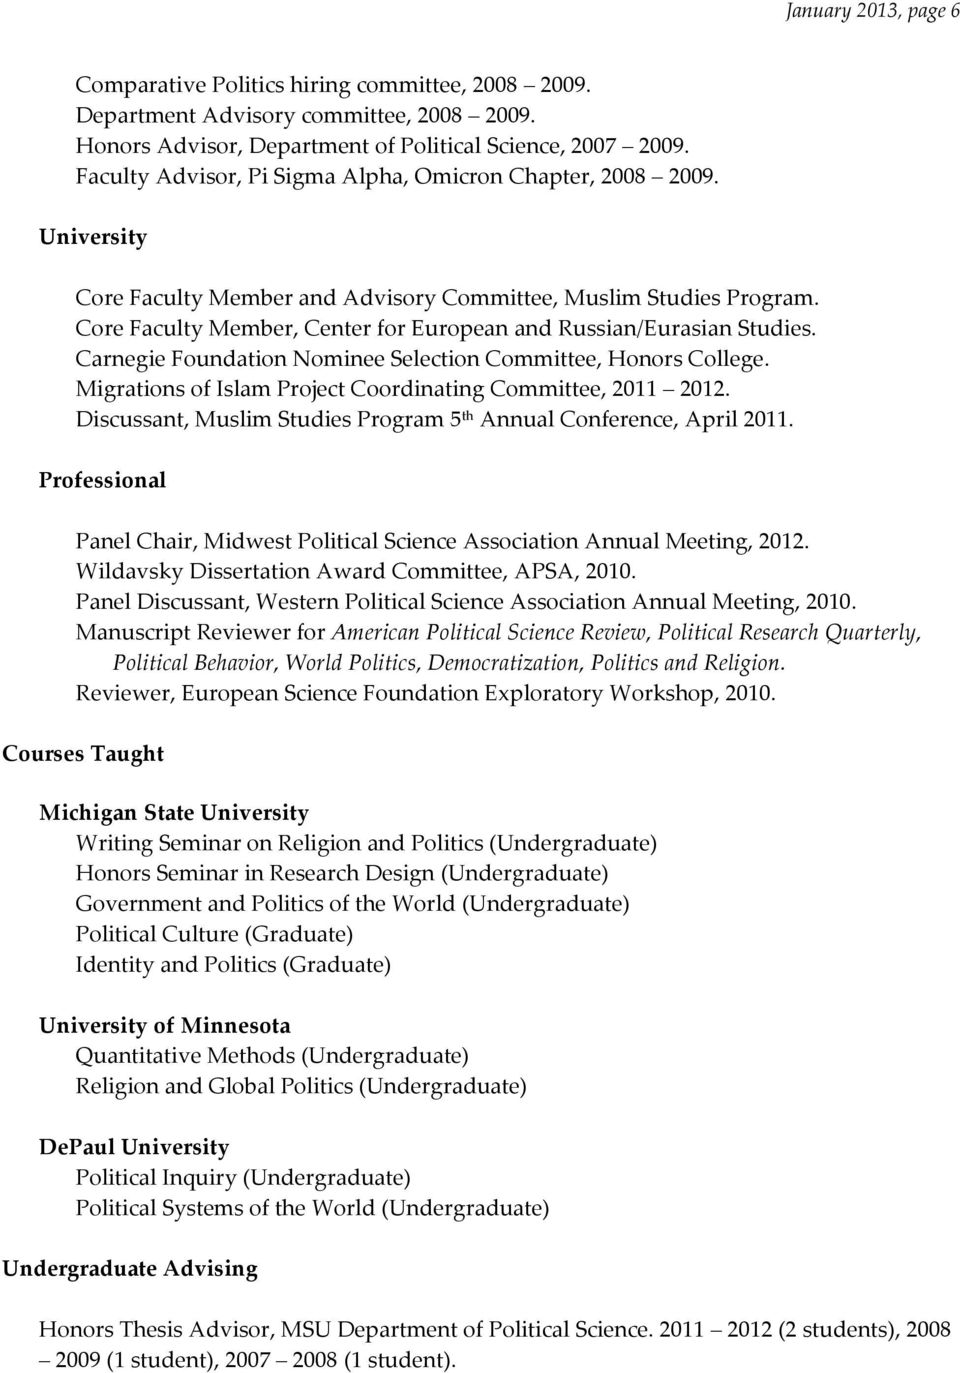 Core Faculty Member, Center for European and Russian/Eurasian Studies. Carnegie Foundation Nominee Selection Committee, Honors College. Migrations of Islam Project Coordinating Committee, 2011 2012.